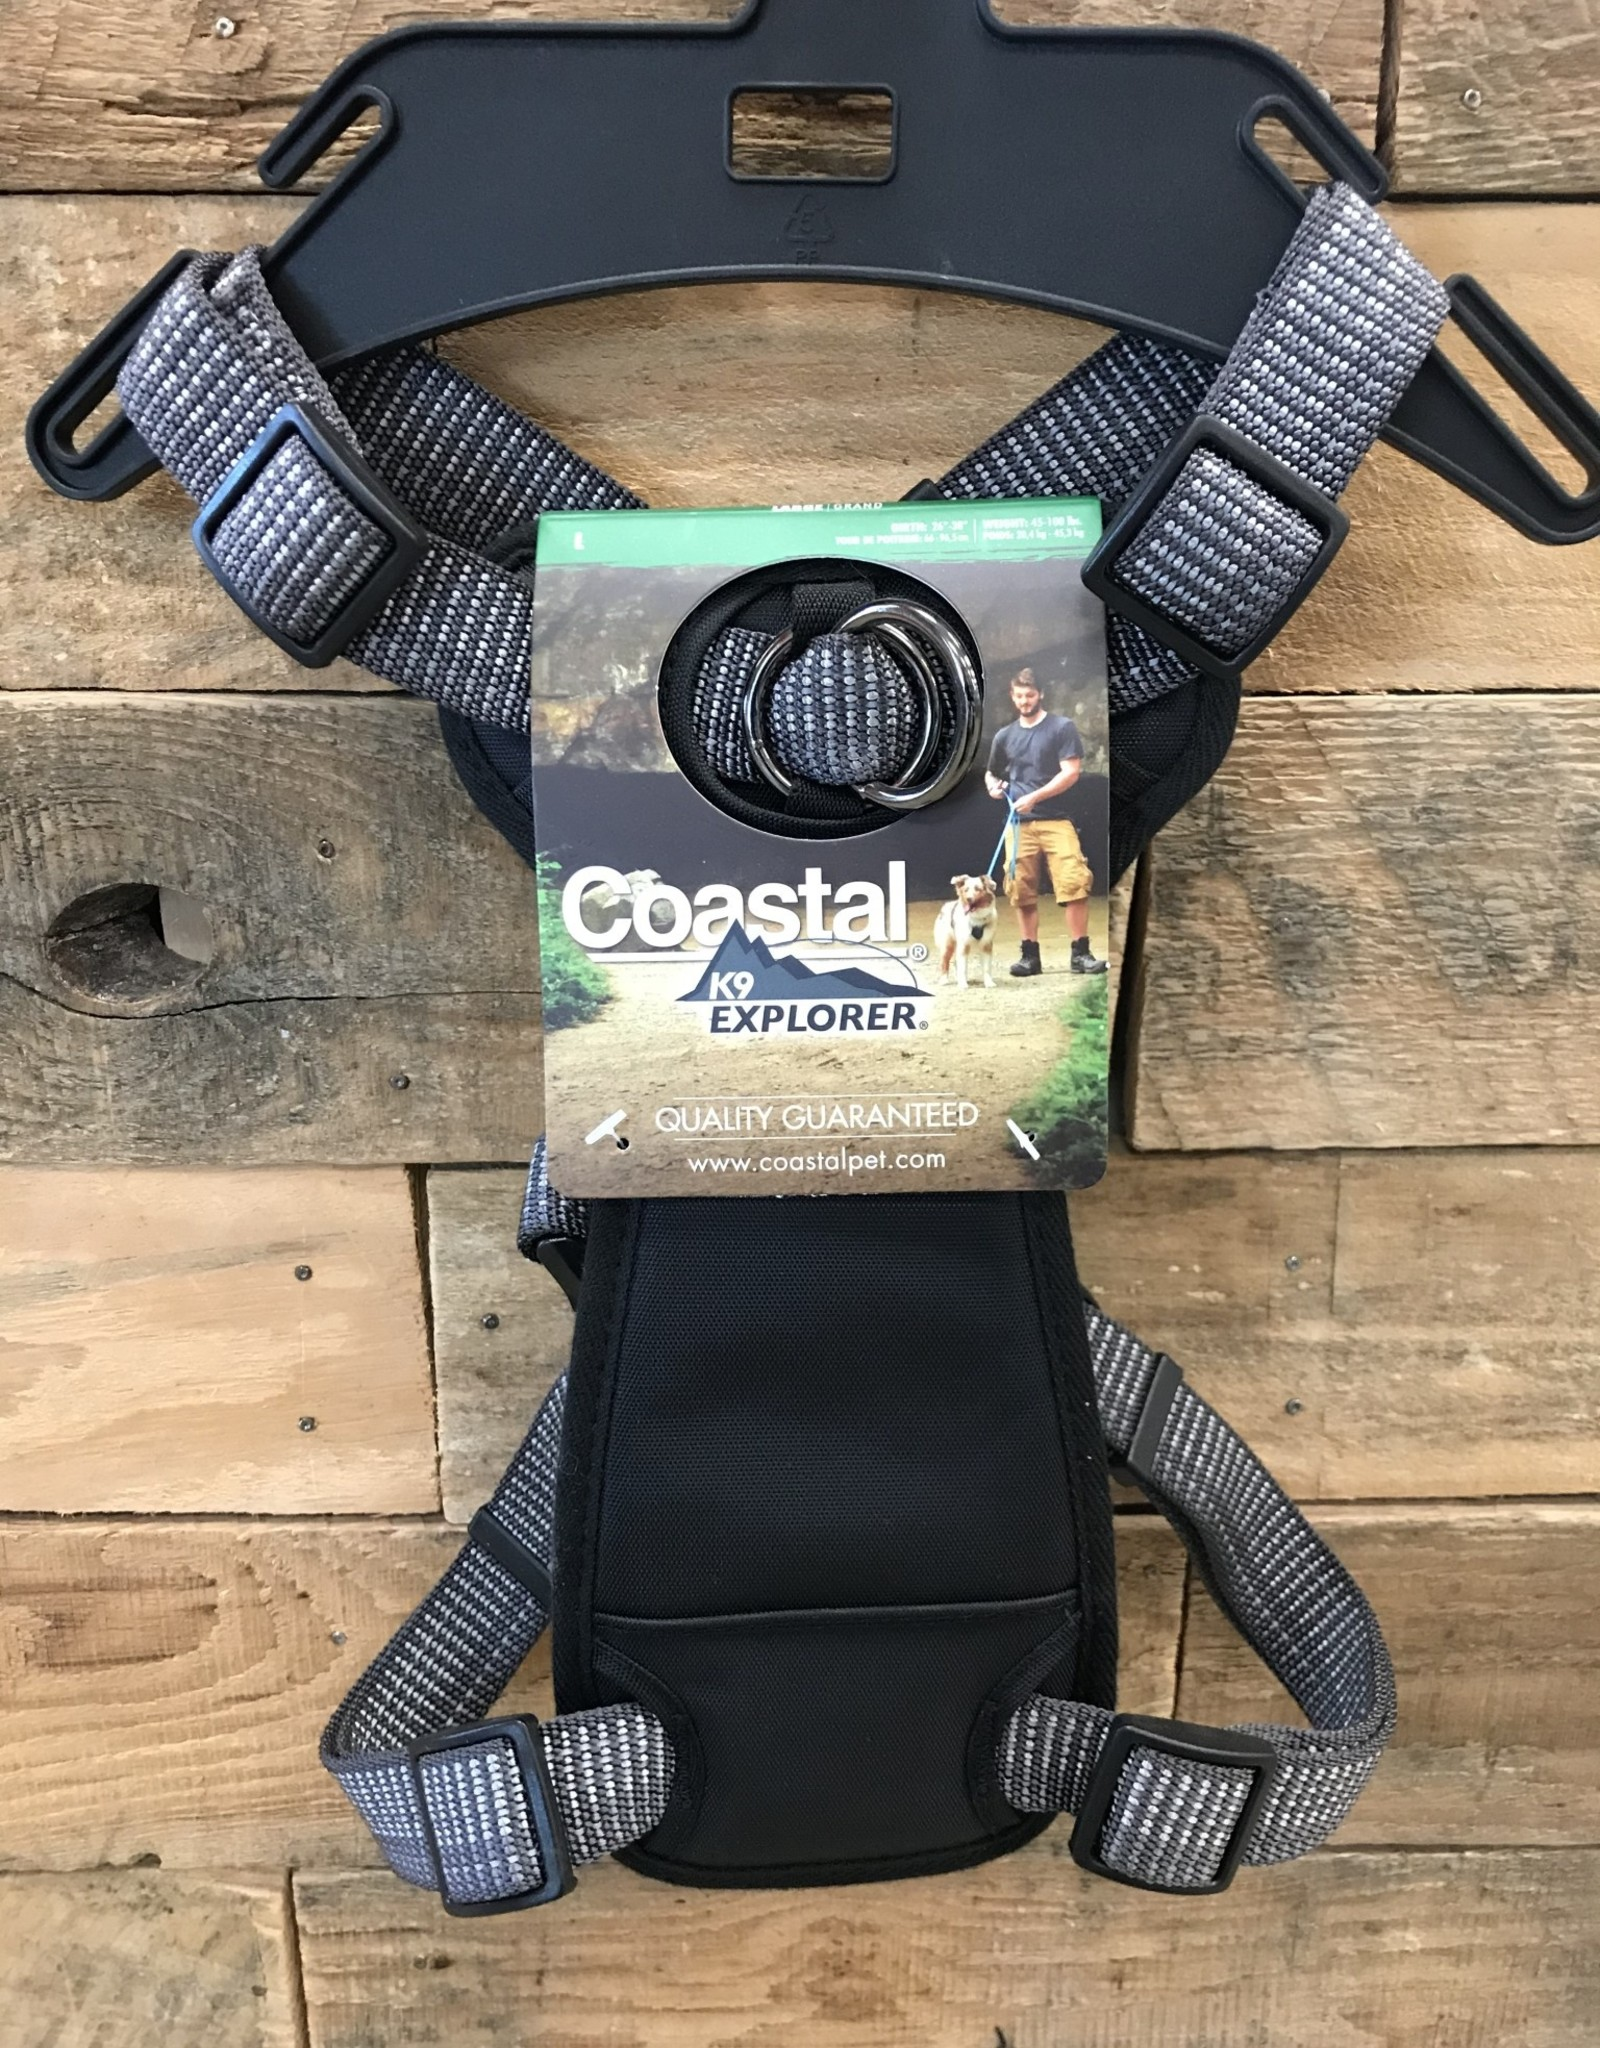 Coastal Pet Products Coastal K9 Explorer Brights Reflective Front Mountain Harnesses